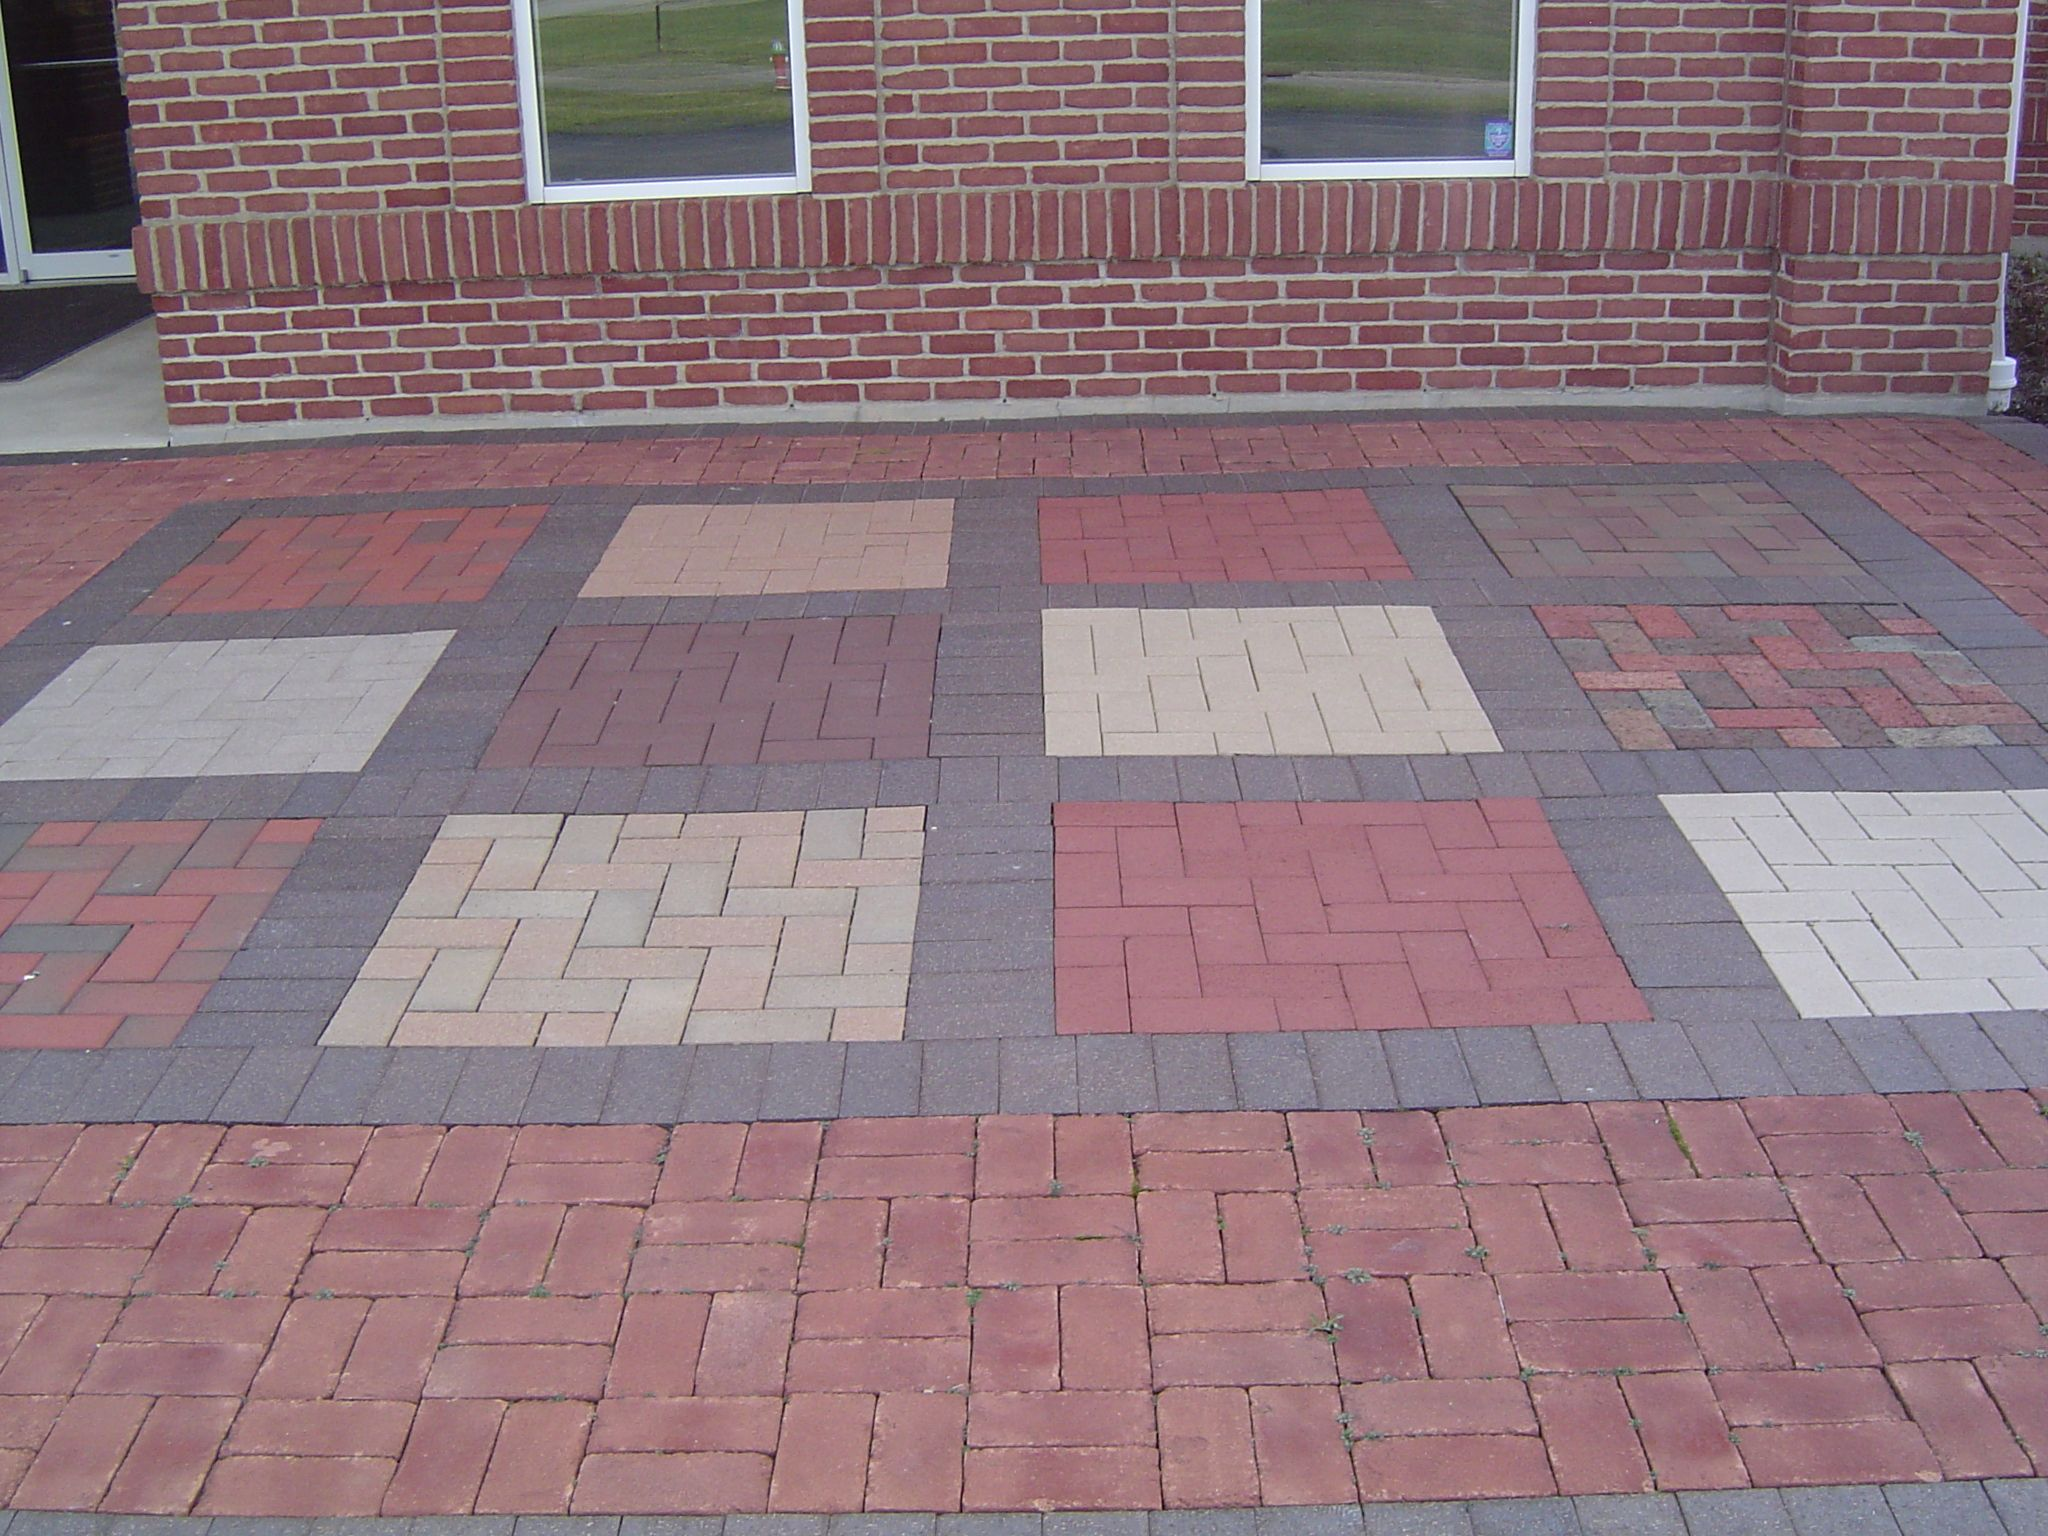 Flooring Patio Designs Among Bricks Applying White Also Bron Plus Red Color